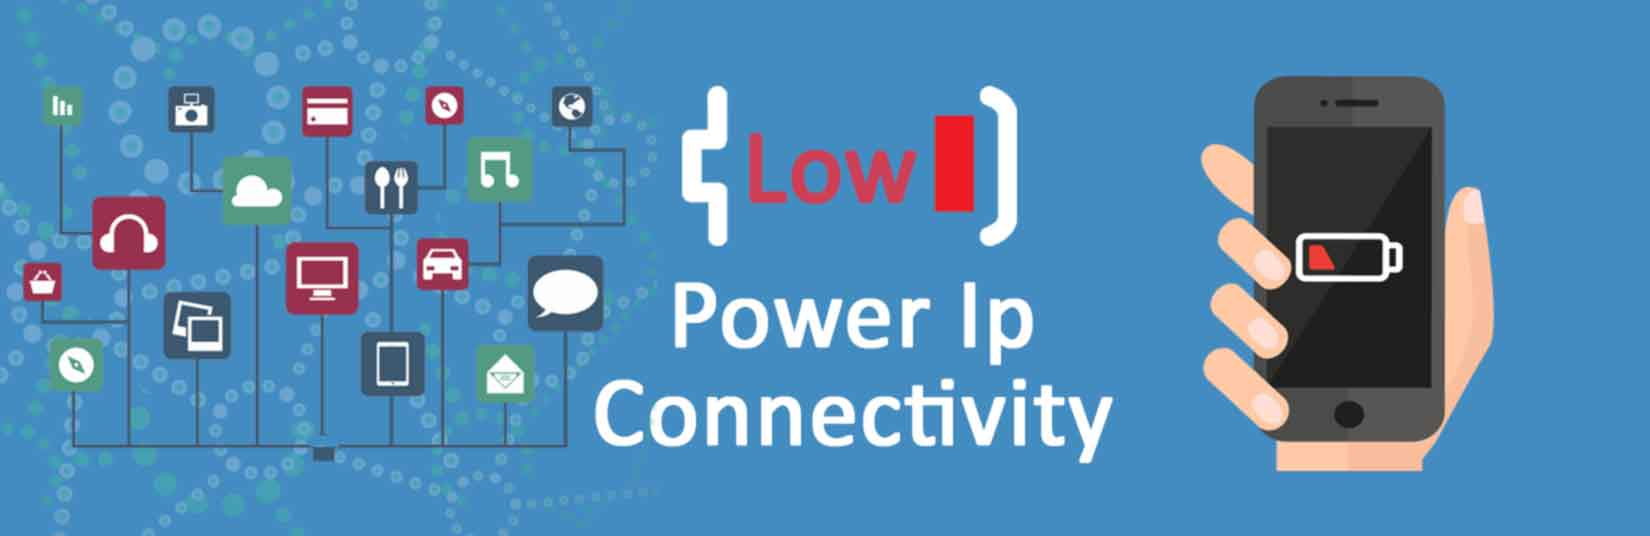 Low-power IP connectivity